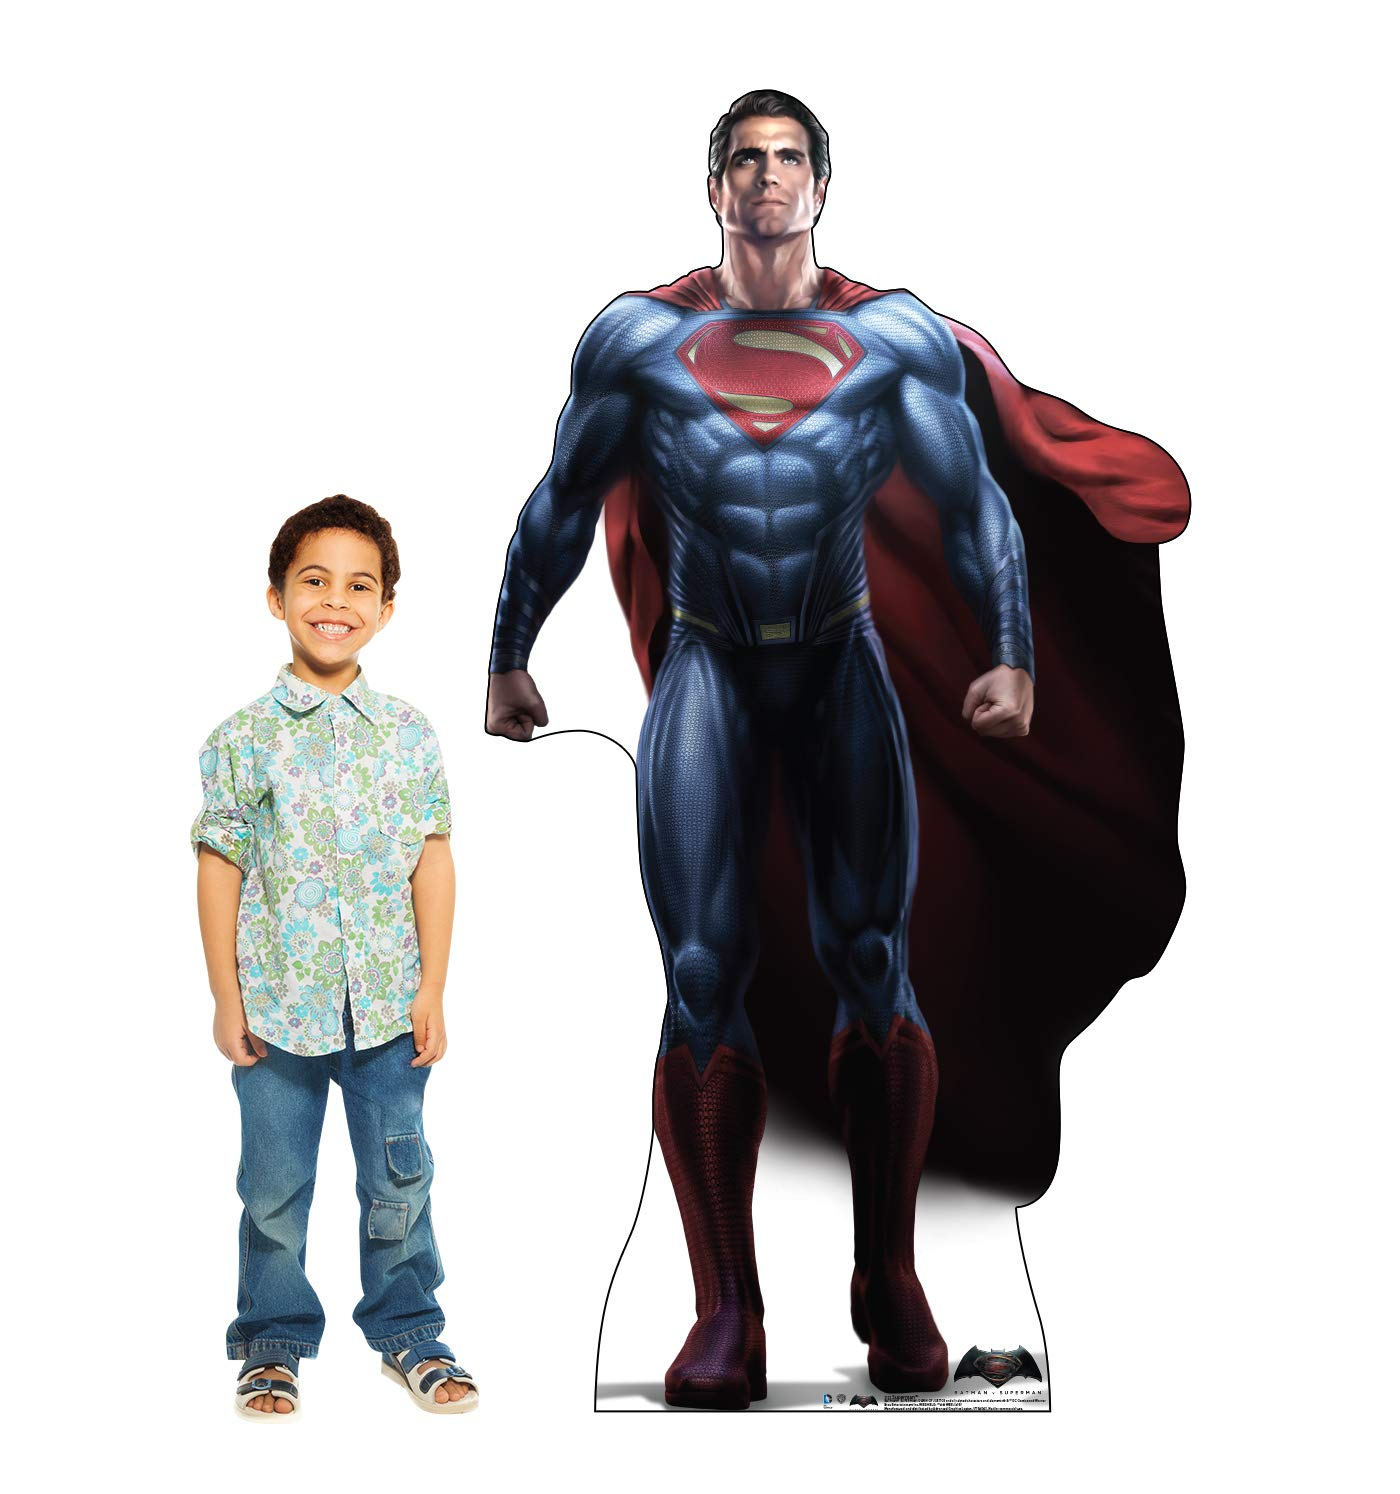 Advanced Graphics Superman Life Size Cardboard Cutout Standup - Batman V Superman: Dawn of Justice (2016) by Advanced Graphics (Image #3)